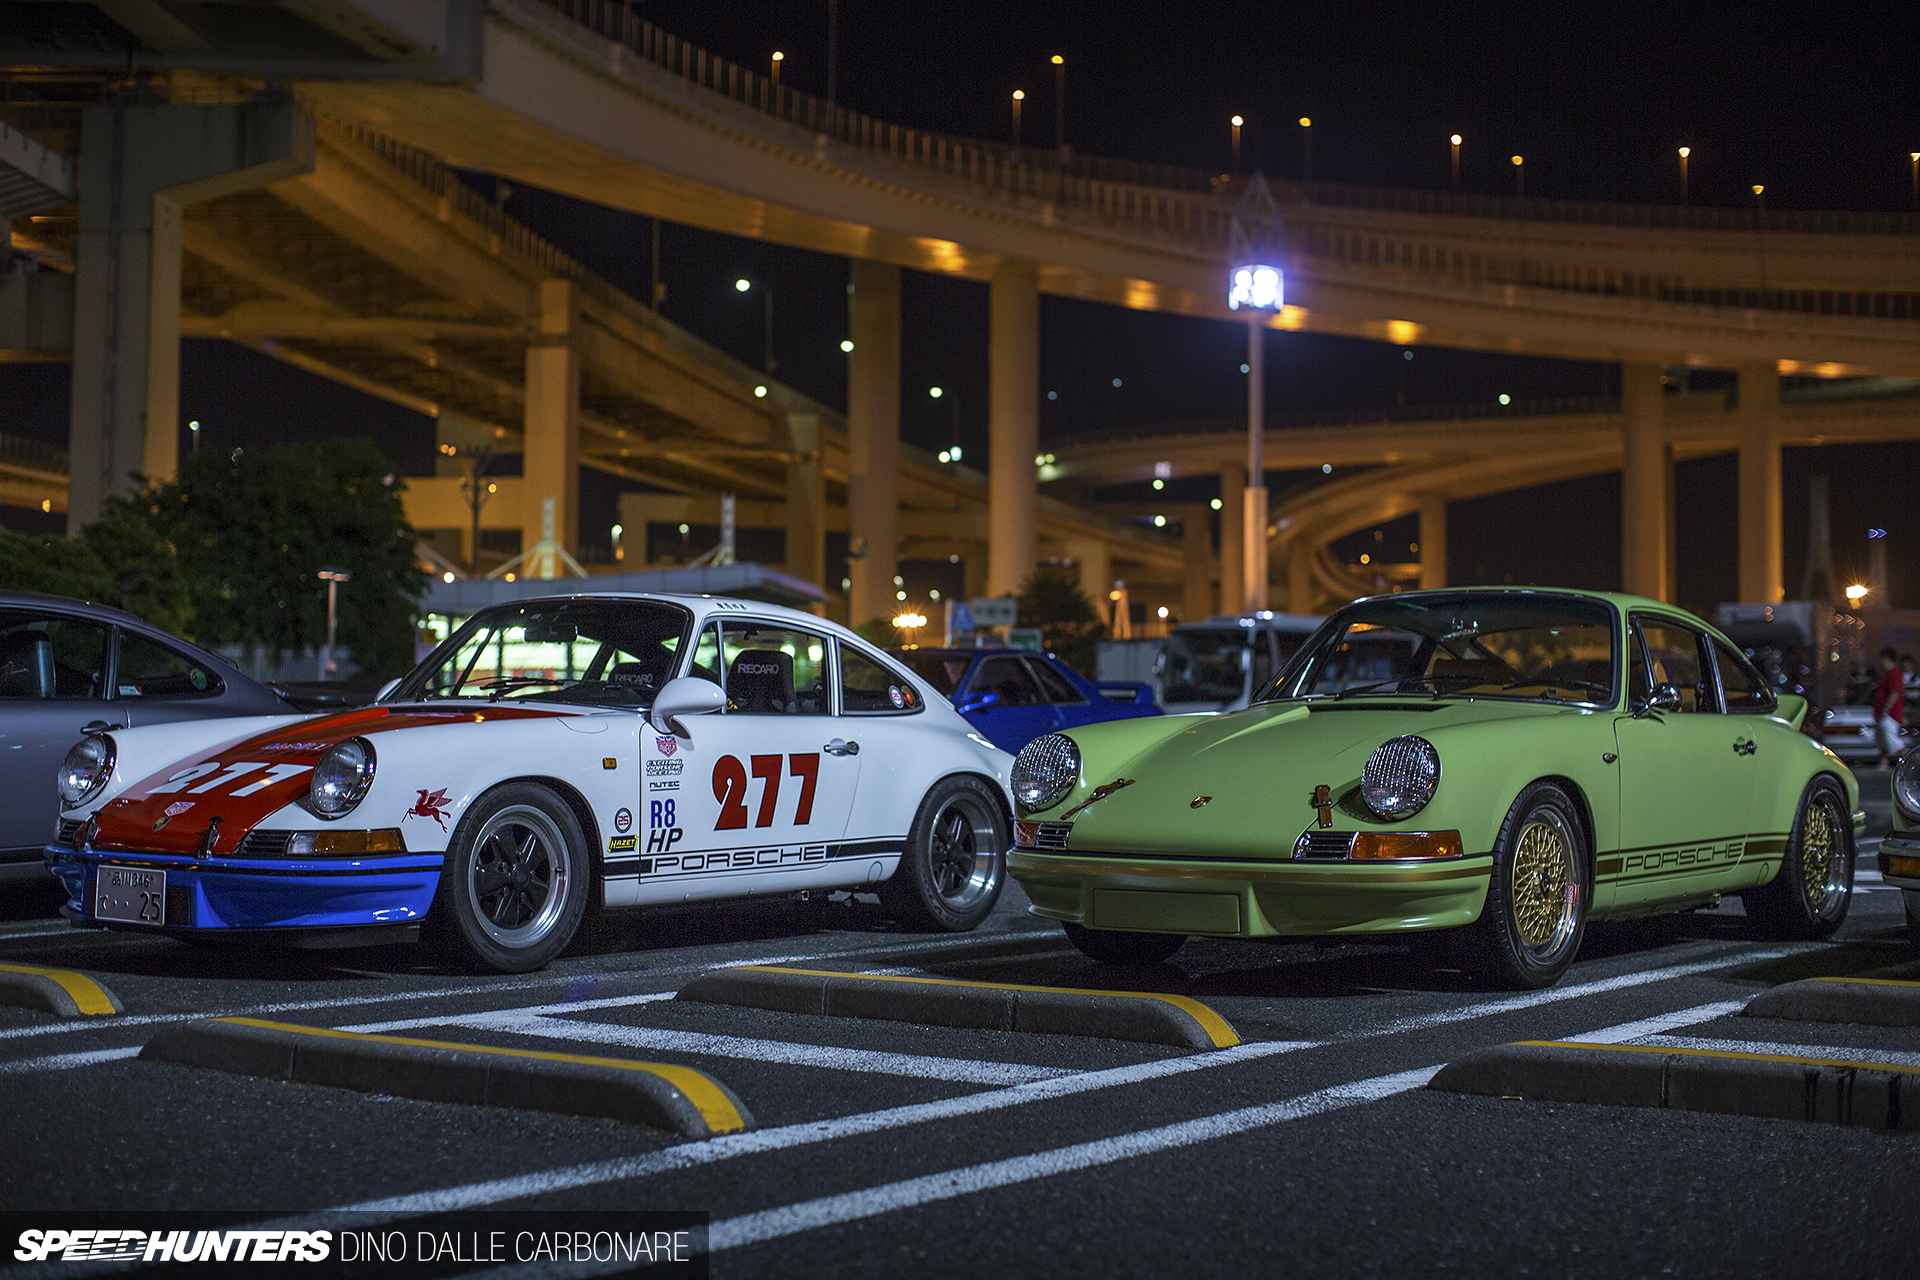 Japan Welcomes Magnus Walker Speedhunters